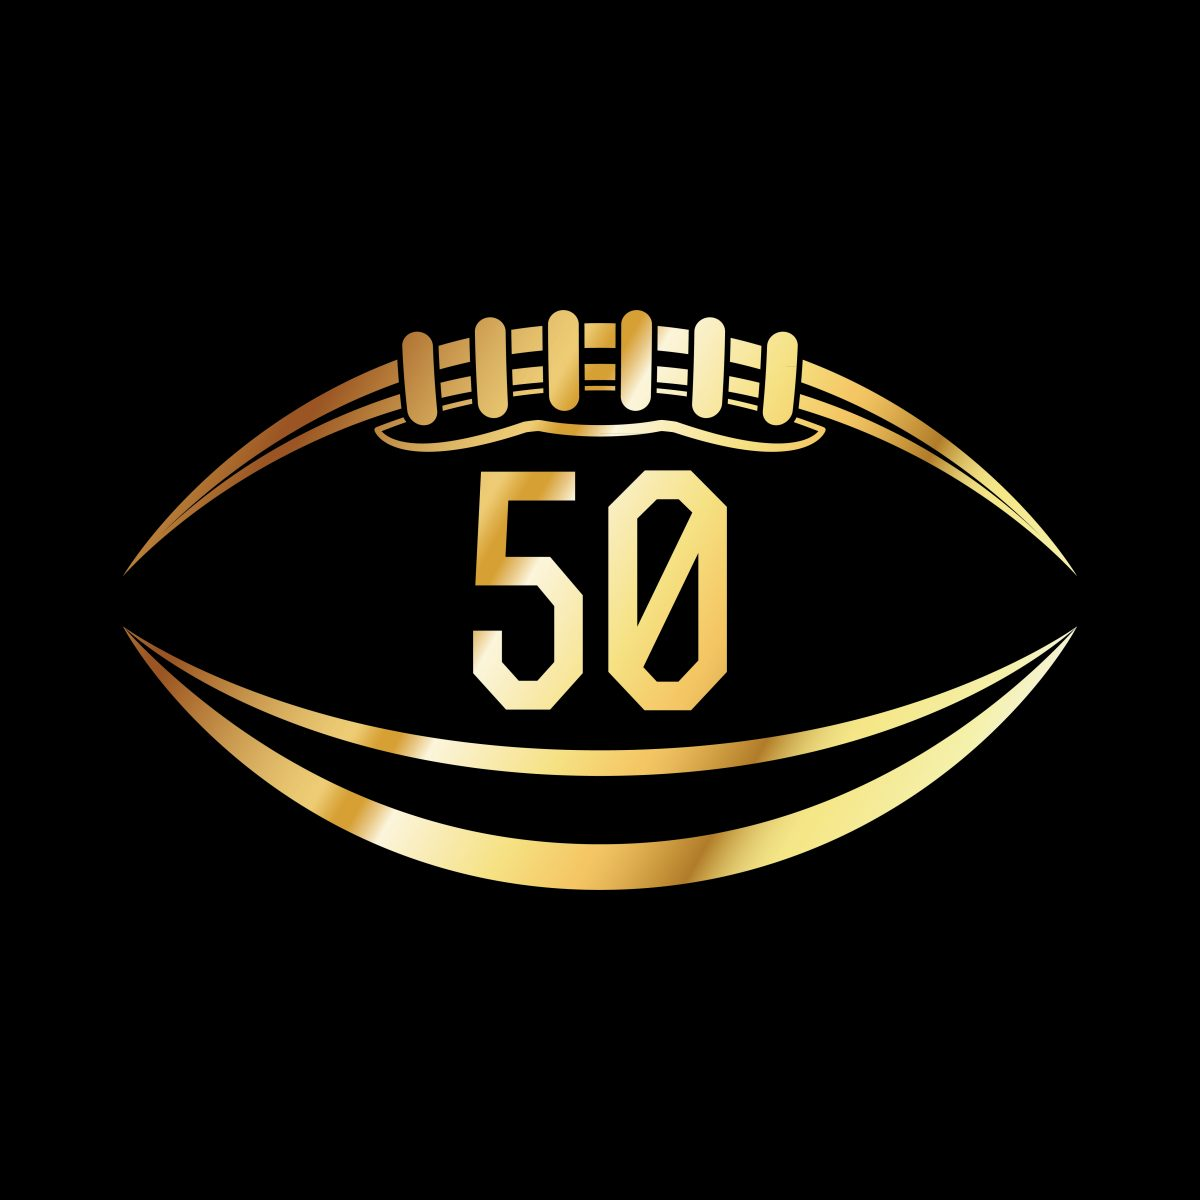 SB50, broadcast consulting, event production company, event production, live event production, video production, production companies, production services, live production, video productions, video production companies, live video production companies, video streaming